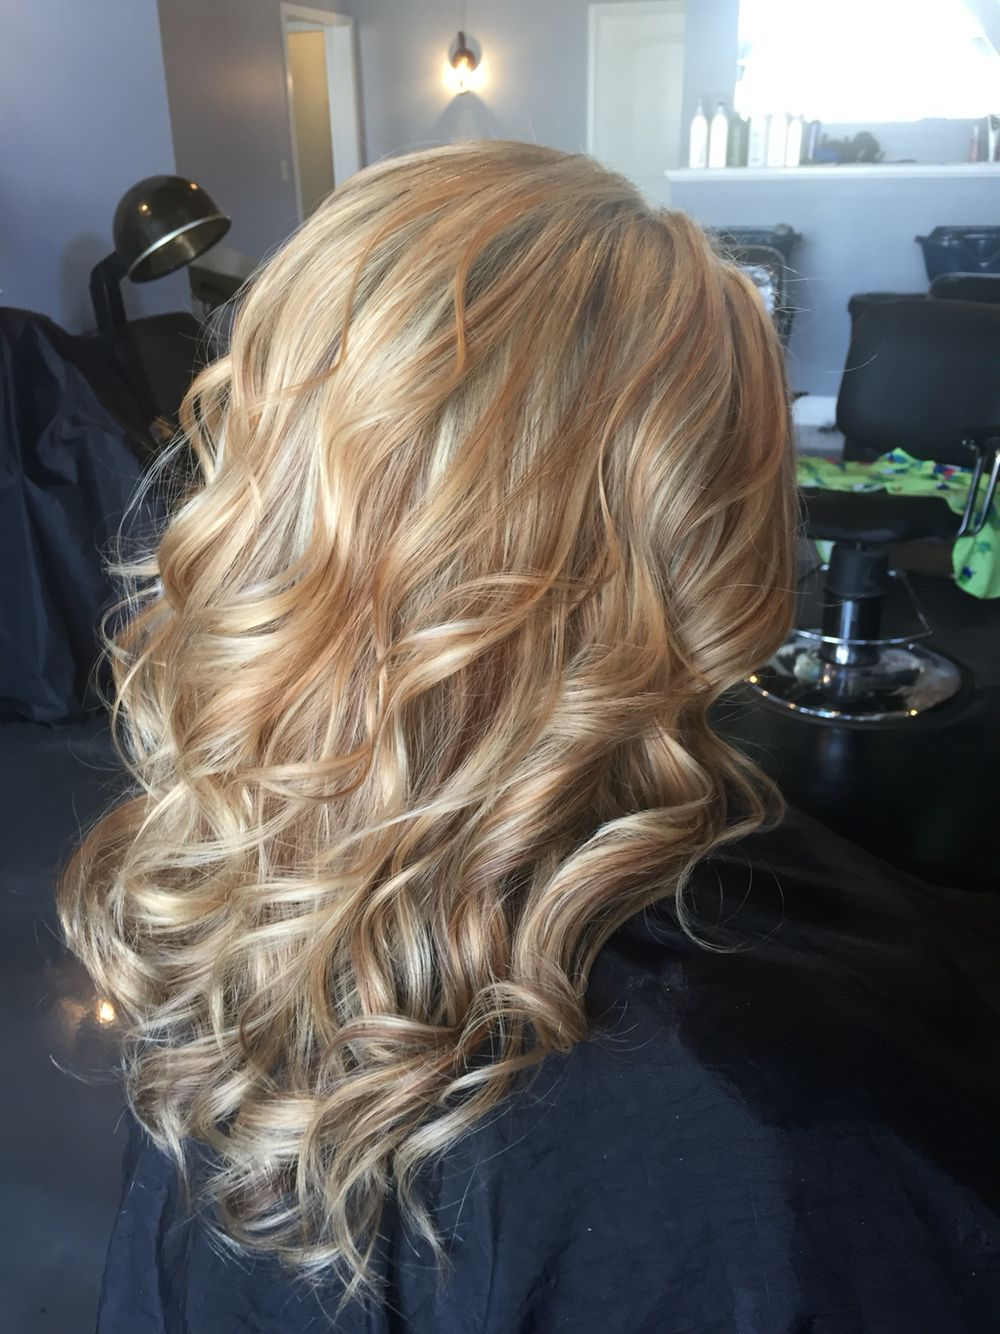 White Blonde Highlighted With Warm Caramel And Coffee